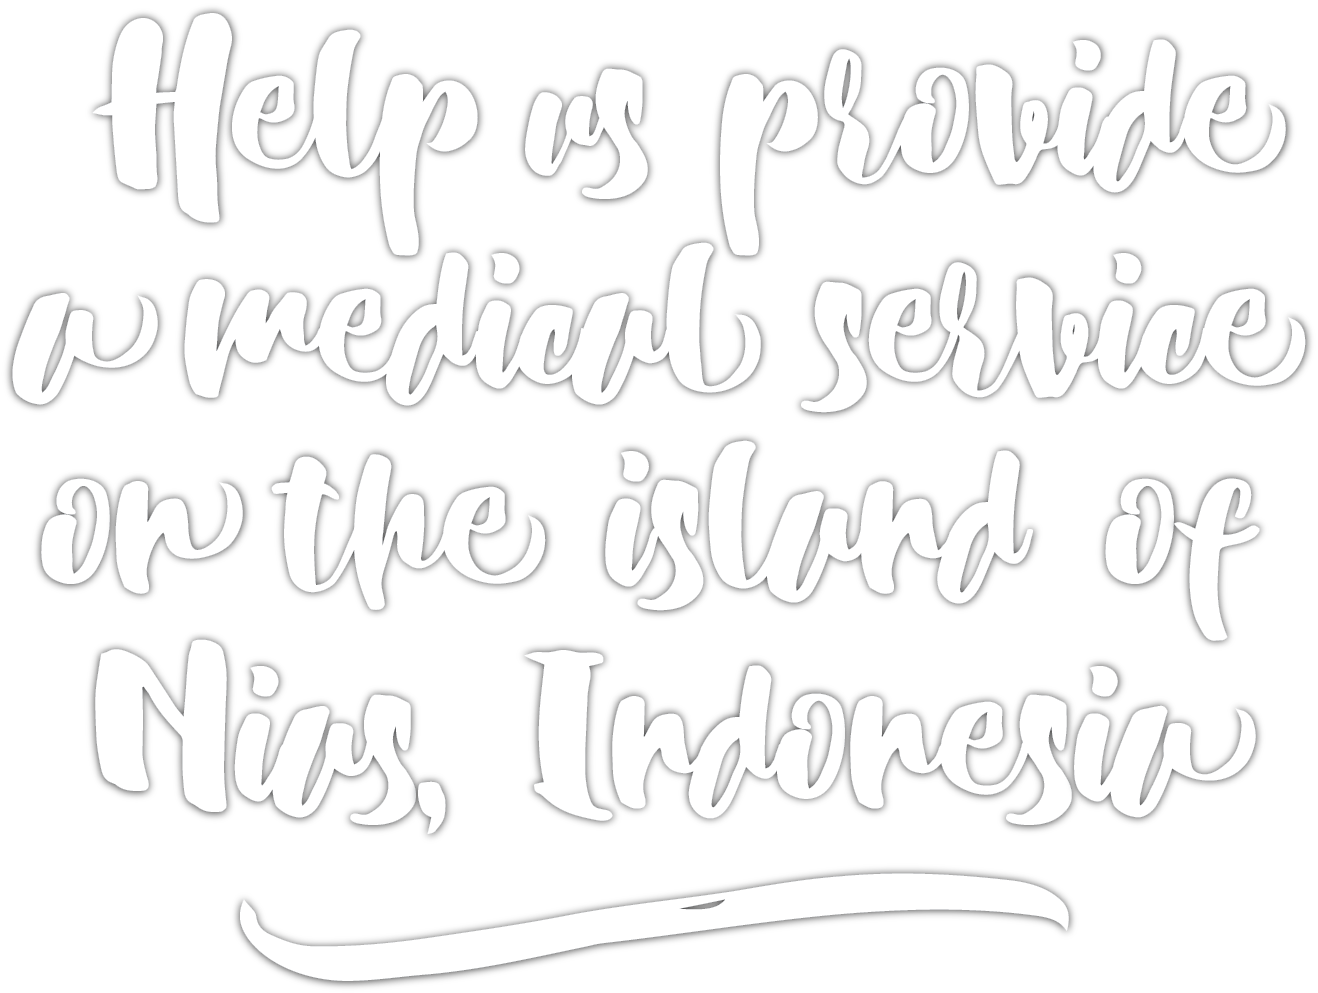 Help us provide a medical service on the island of Nias, Indonesia